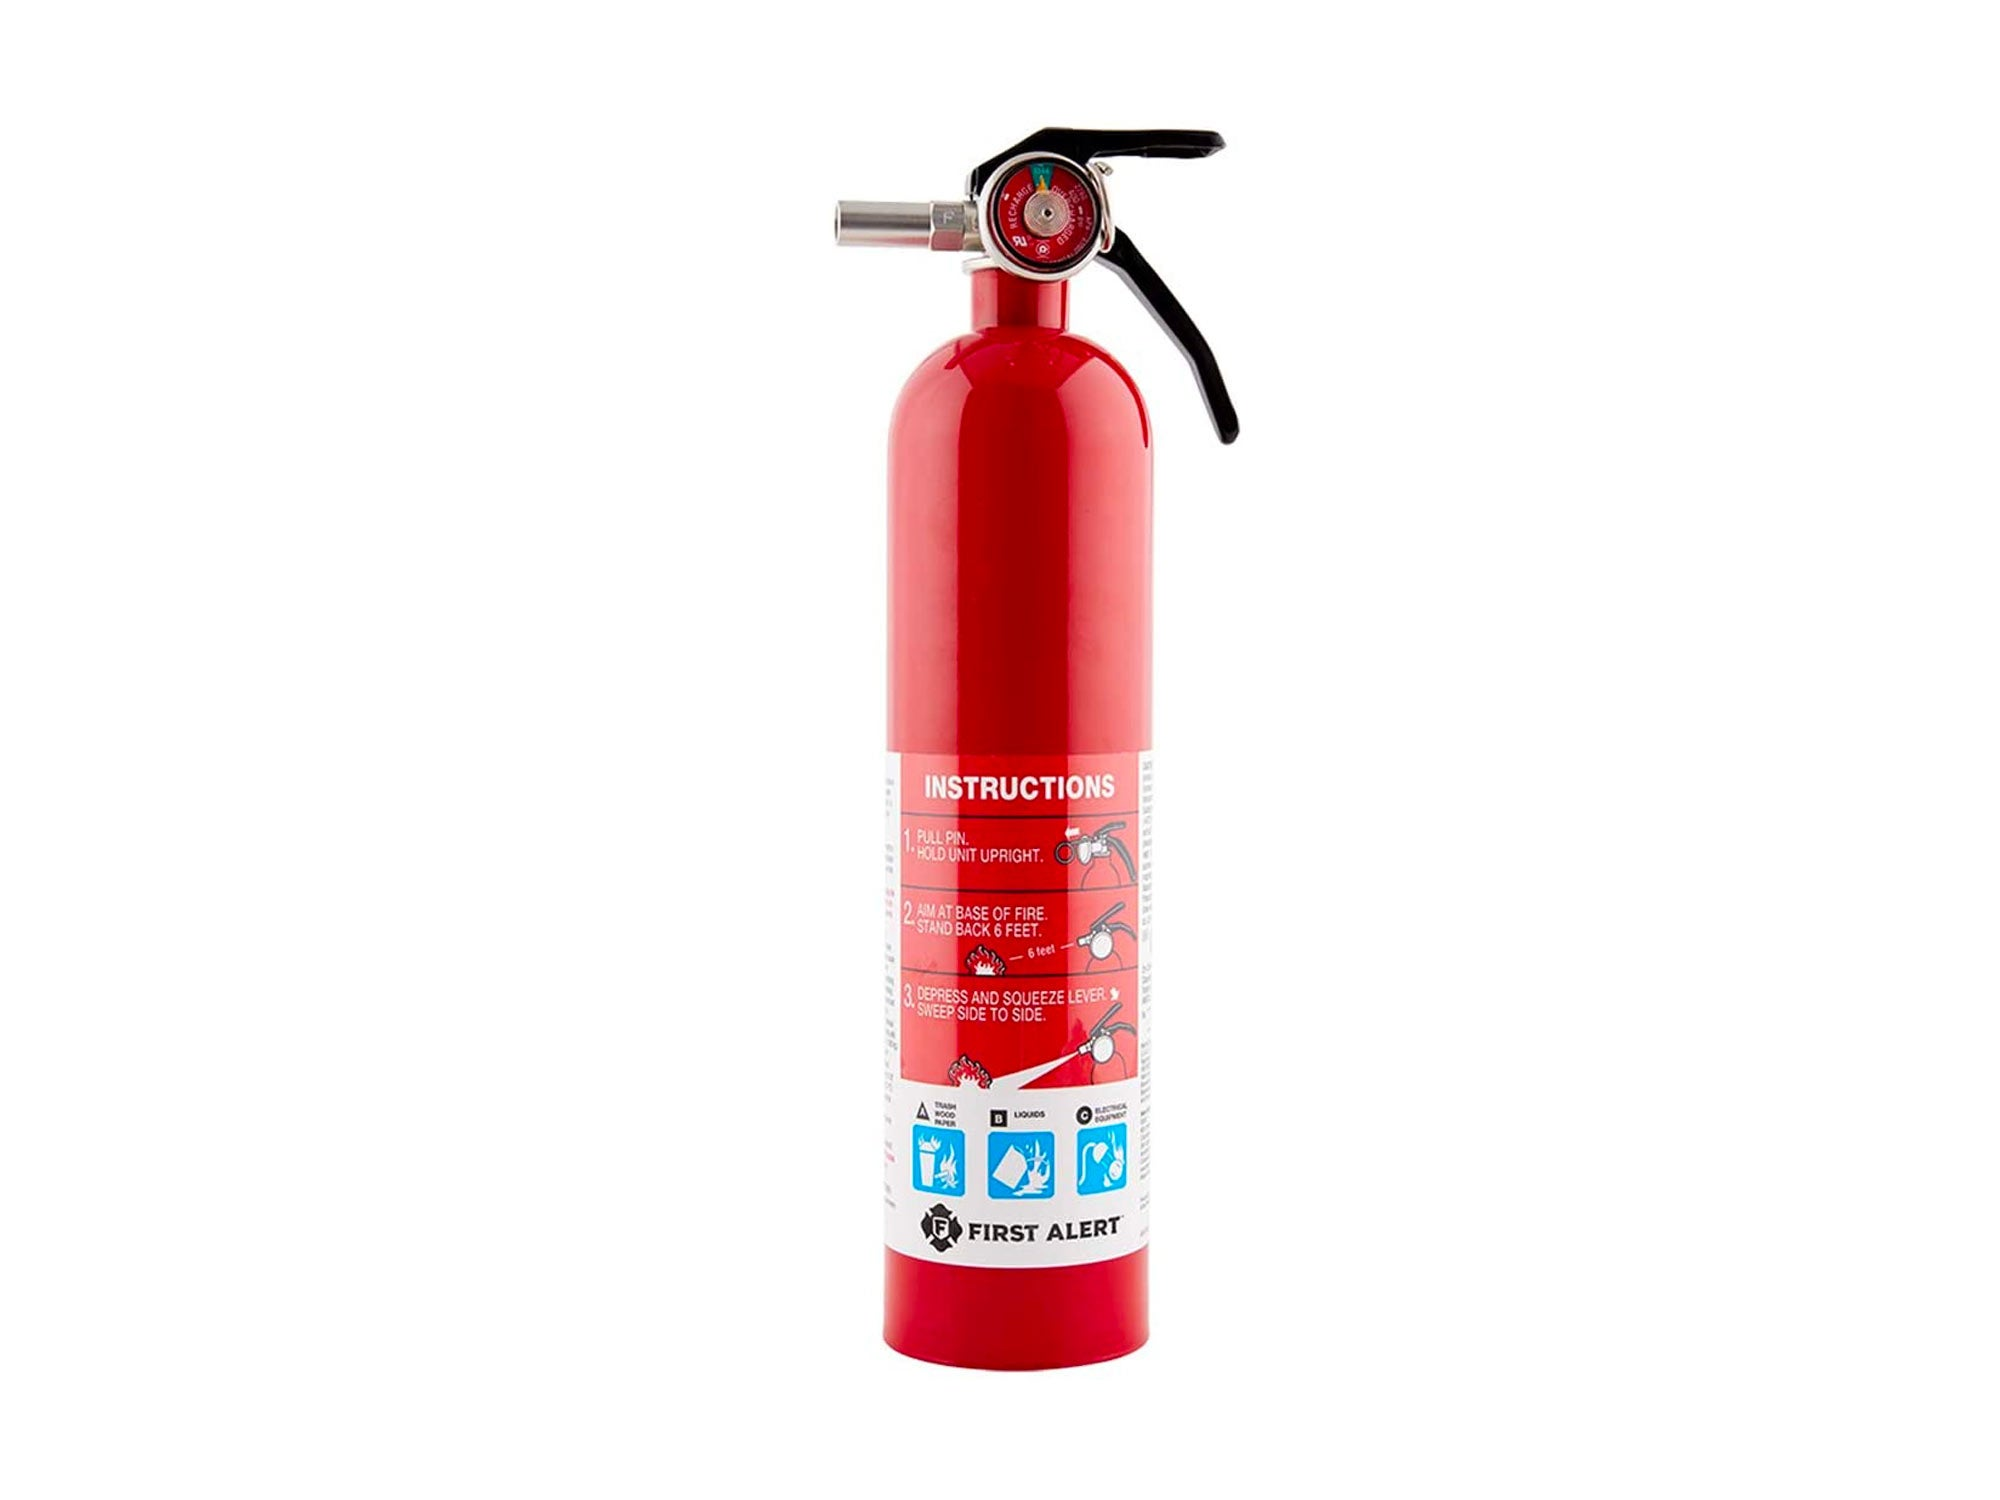 First Alert Standard Home Fire Extinguisher, Red